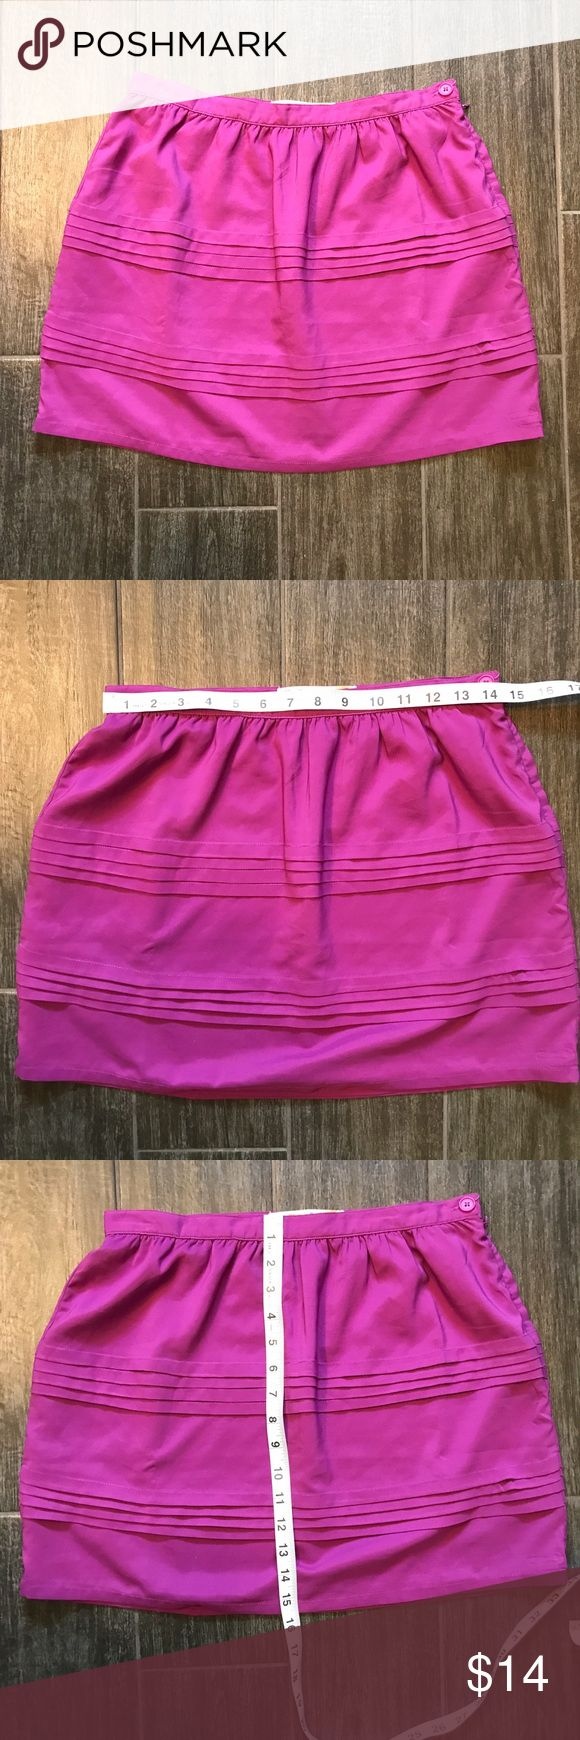 Roxy fuchsia skirt - size 7 Roxy fuchsia skirt - size 7. Used. Lined and perfect for summer. Beautiful vibrant color. Some signs of wear on the sides, shown in the last two pictures and reflected in price. I don't think it's noticeable while on. Roxy Skirts Mini